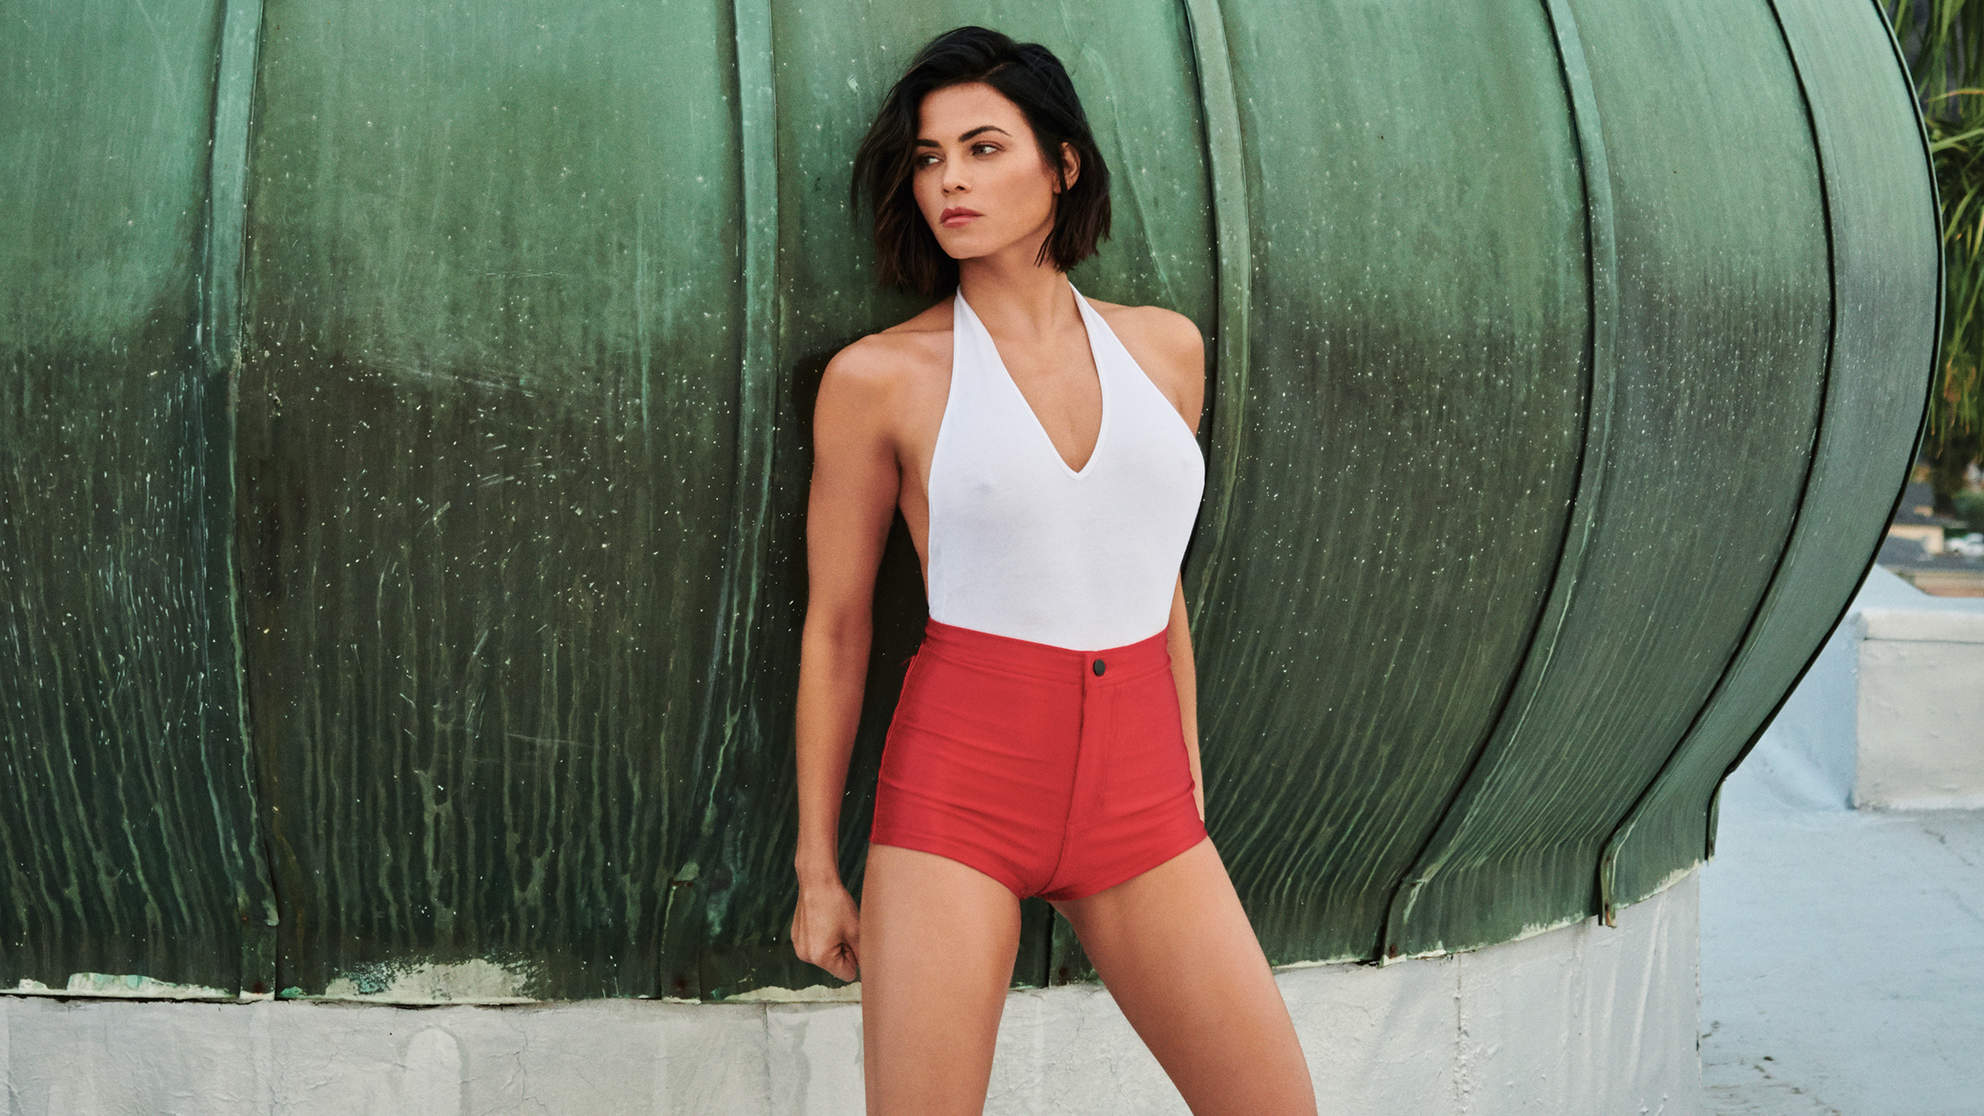 jenna dewan tatum full length red high waisted shorts